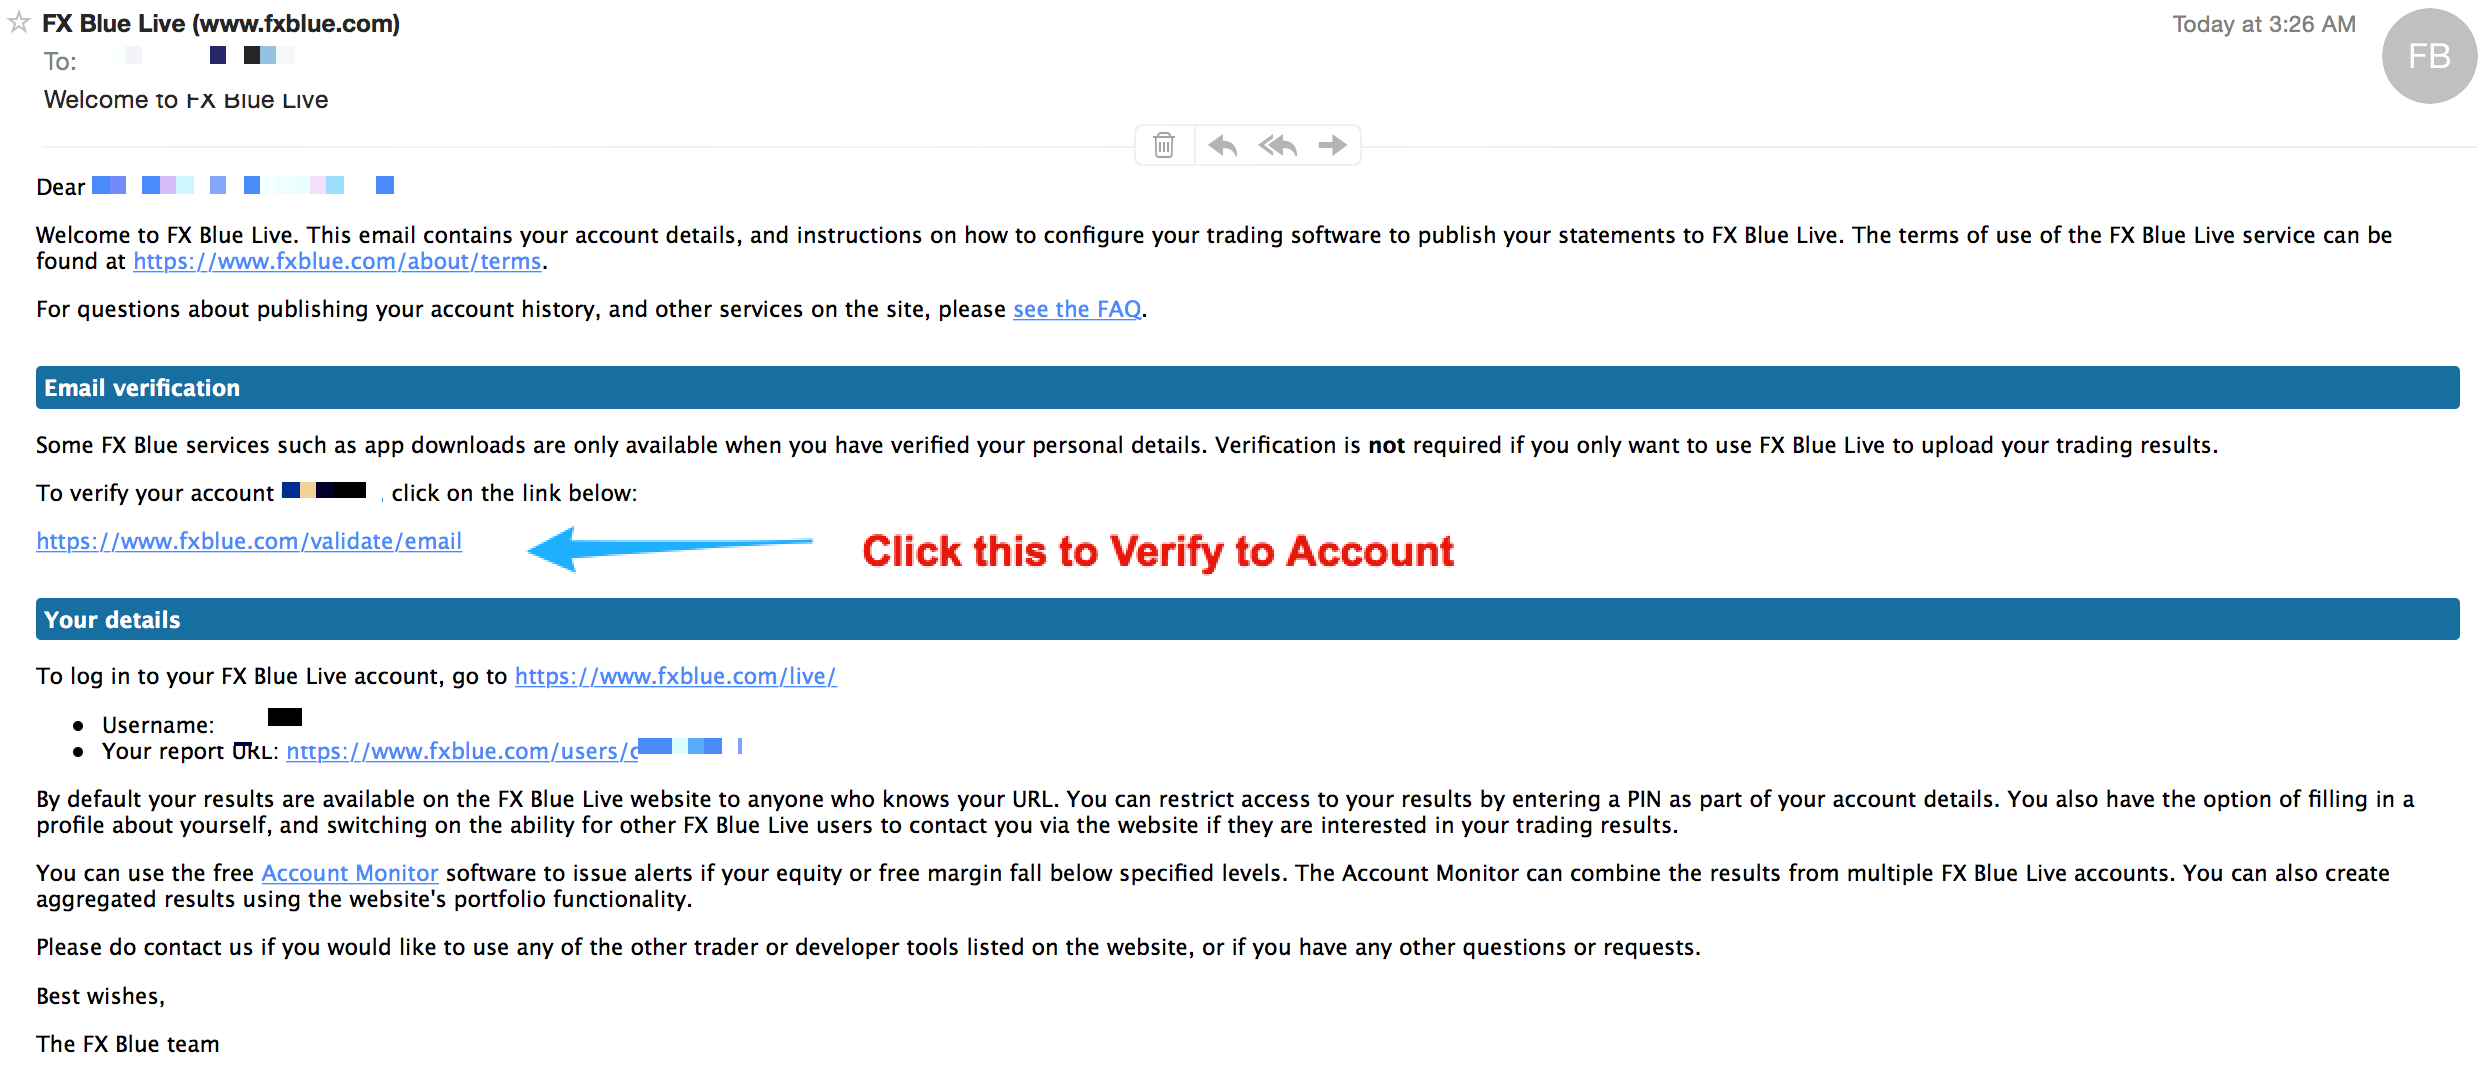 FX Blue - IMPORTANT to Verify Your Email Address